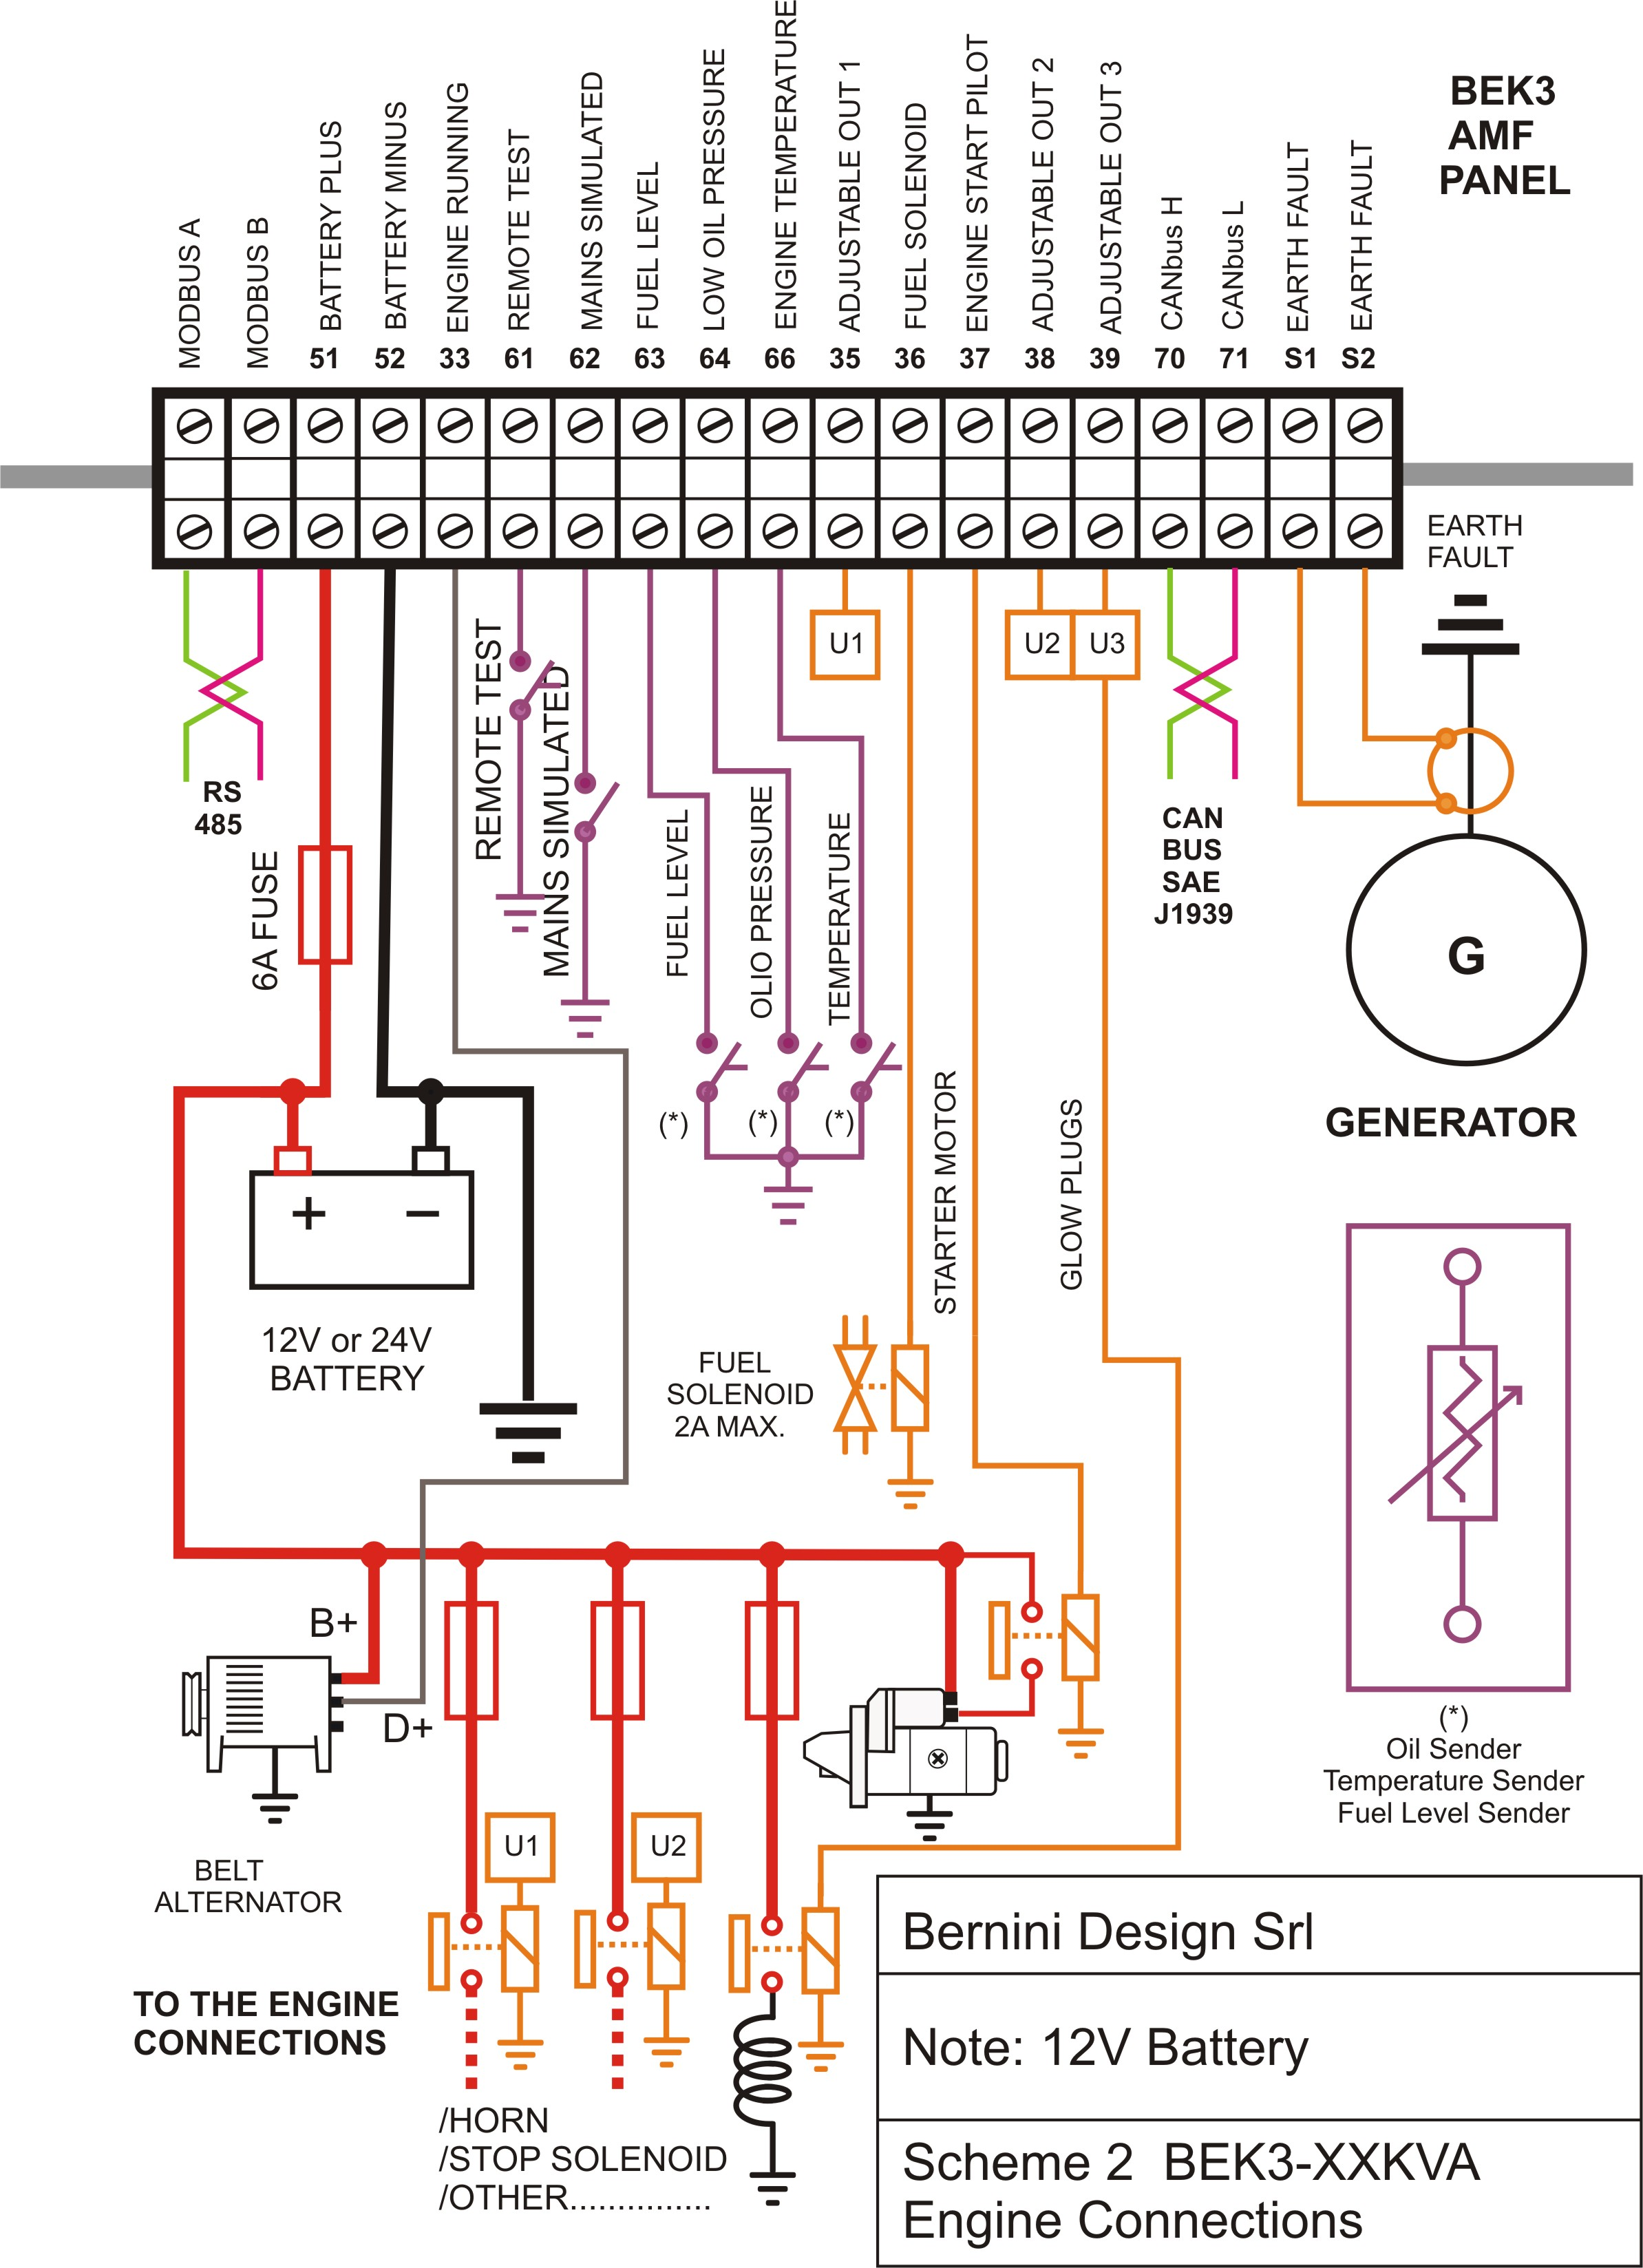 Garmin 182c Wiring Diagram Libraries Power Libraryac Generator Voltage Get Free Image About Ac Synchronous